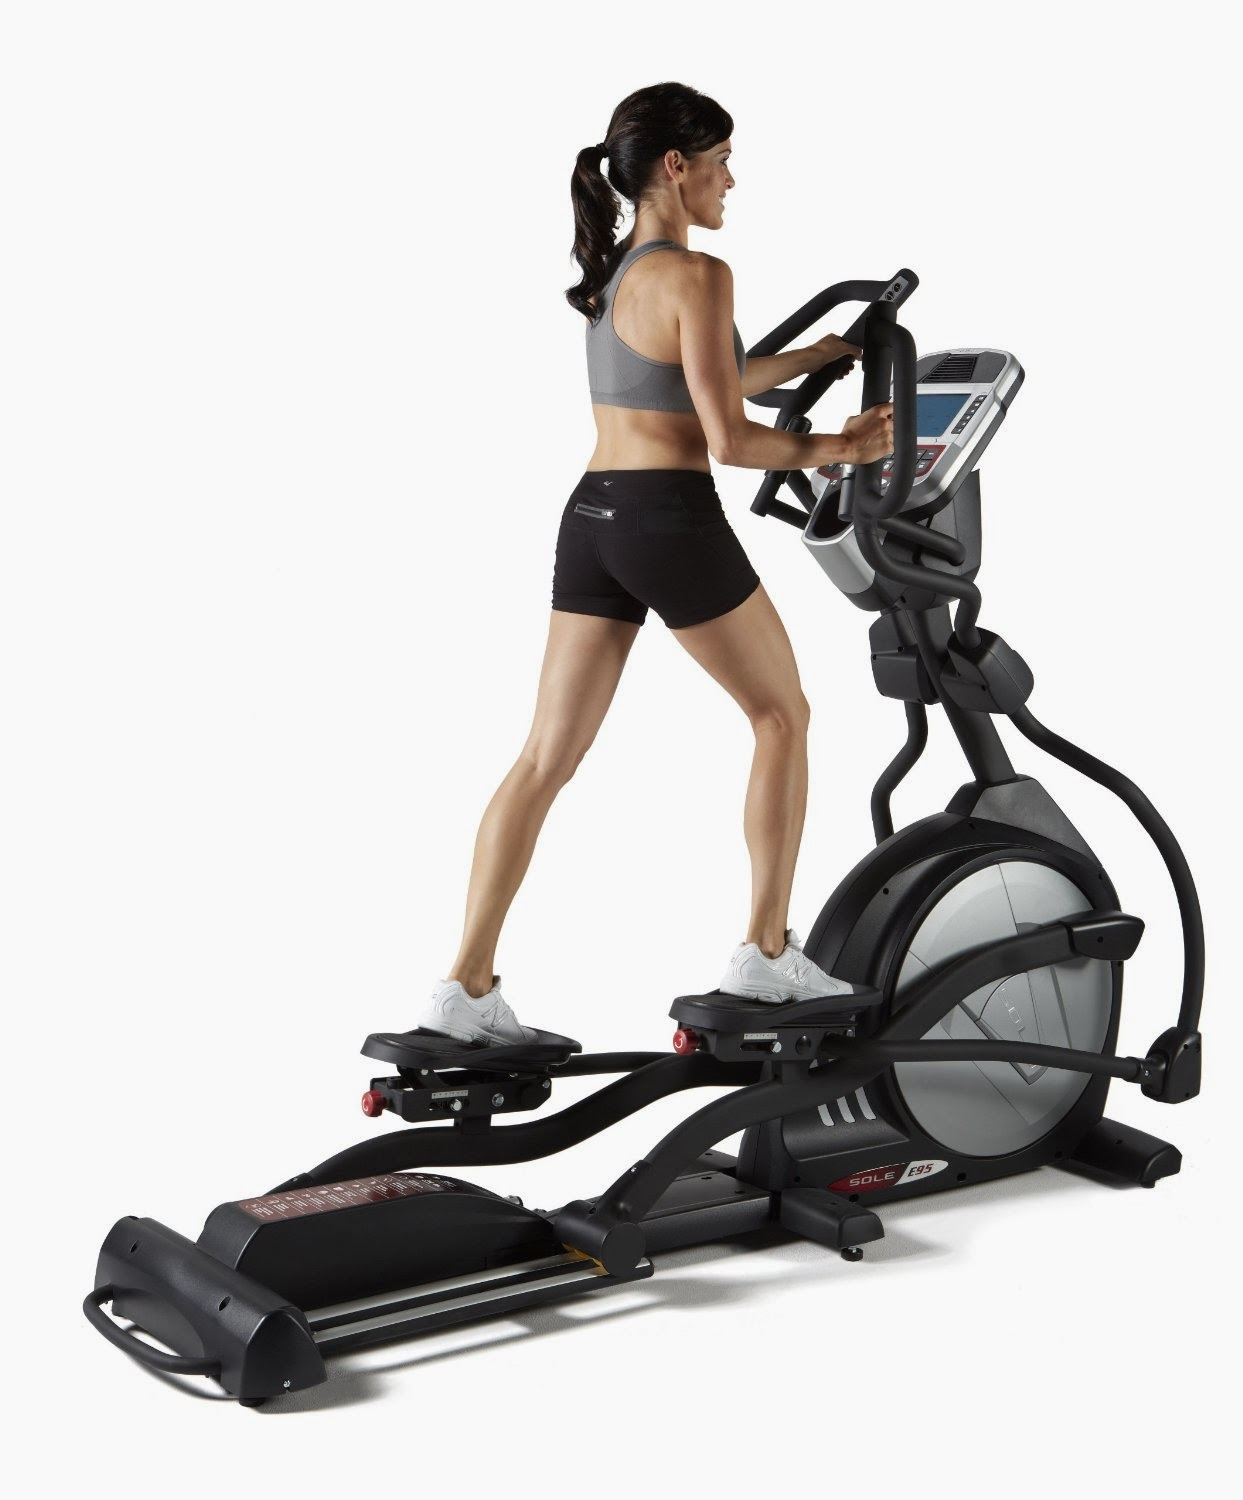 Sole E95 Elliptical Trainer Machine, picture, review features & specifications, compare with Sole E35